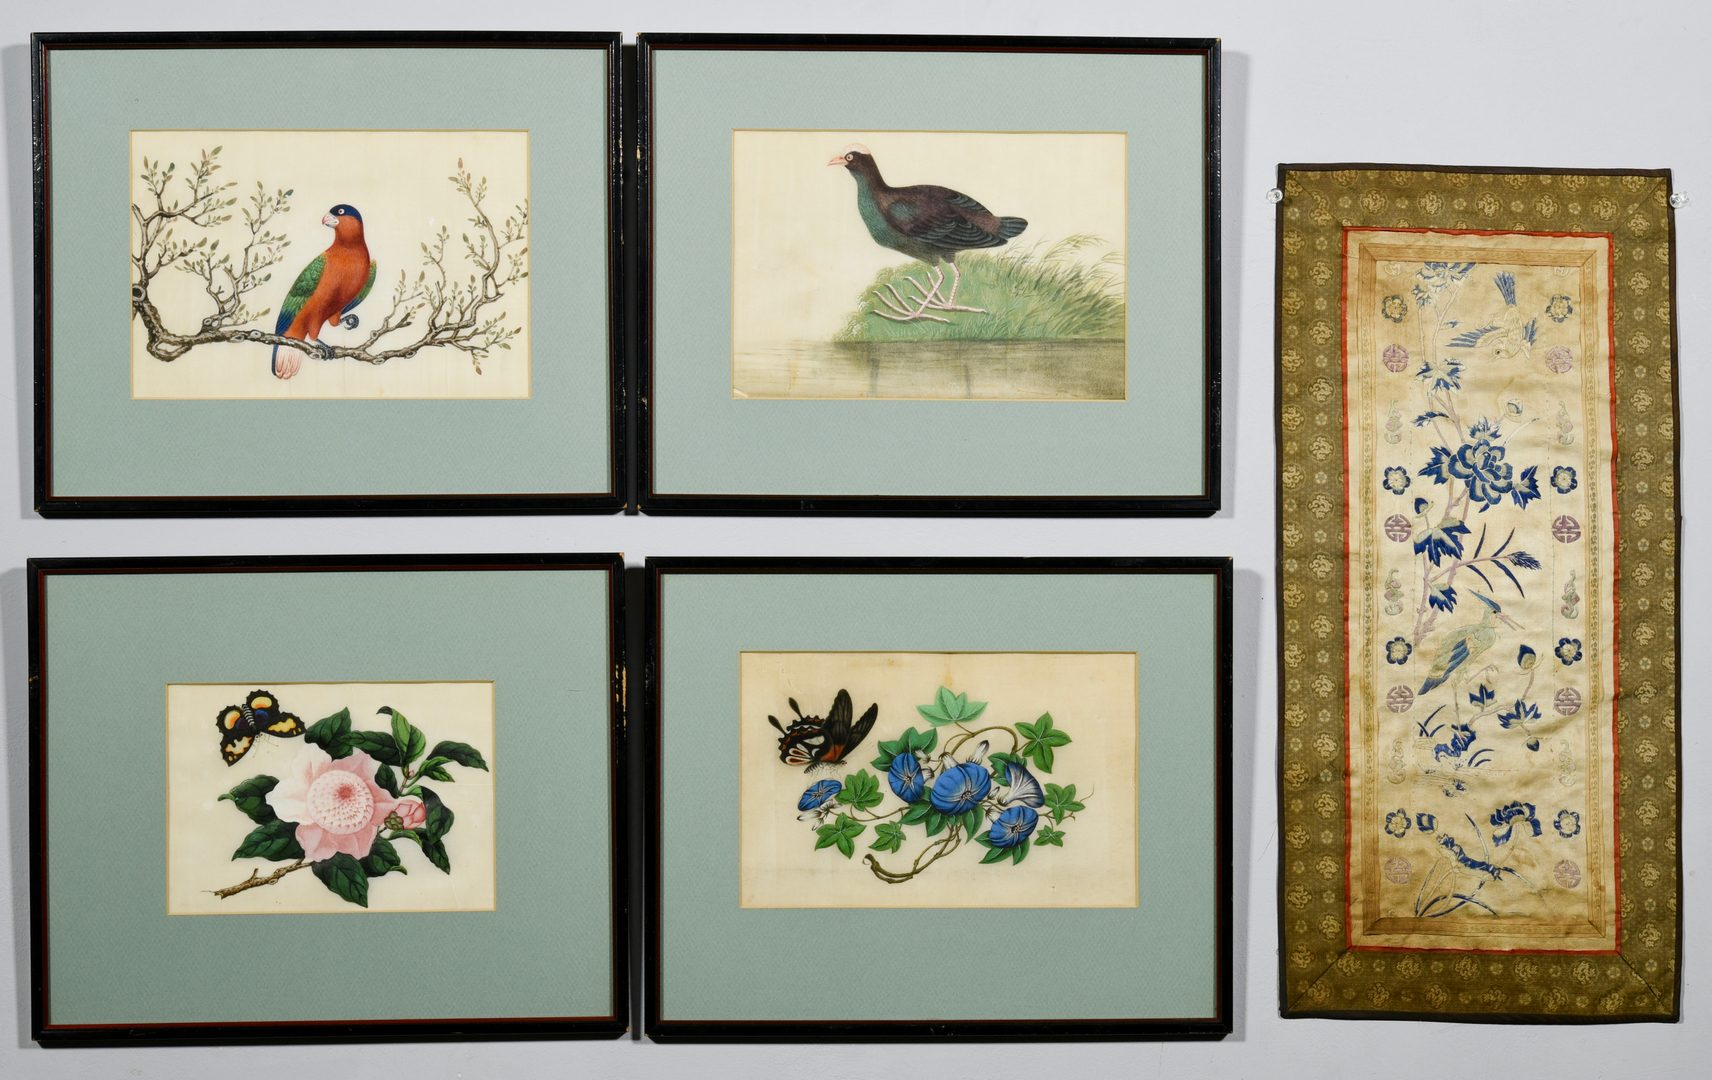 Lot 332: 7 Asian Artworks, incl. watercolors